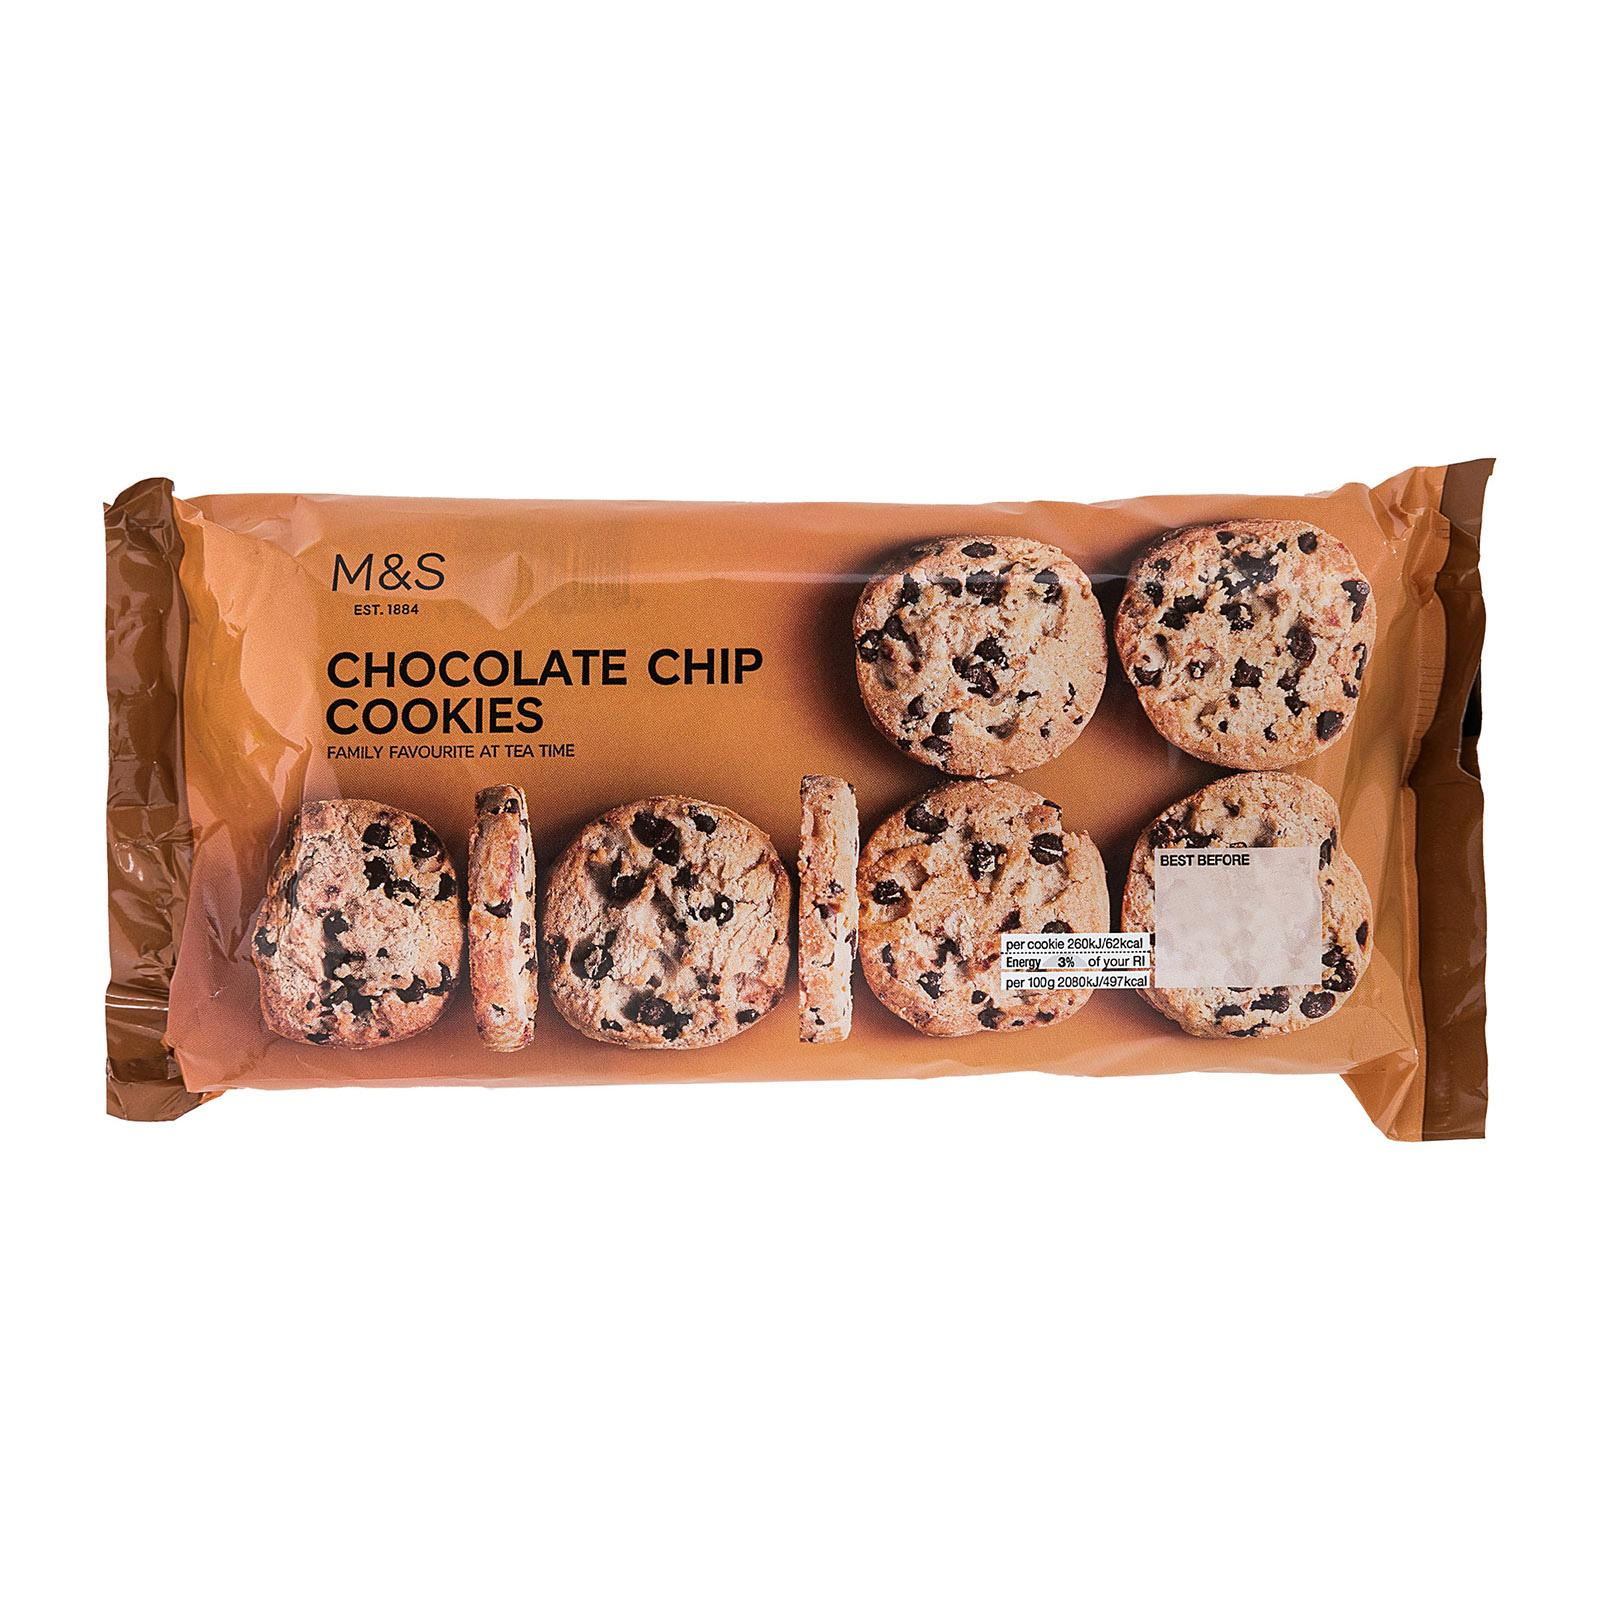 Marks & Spencer Banded Pack Chocolate Chip Cookies